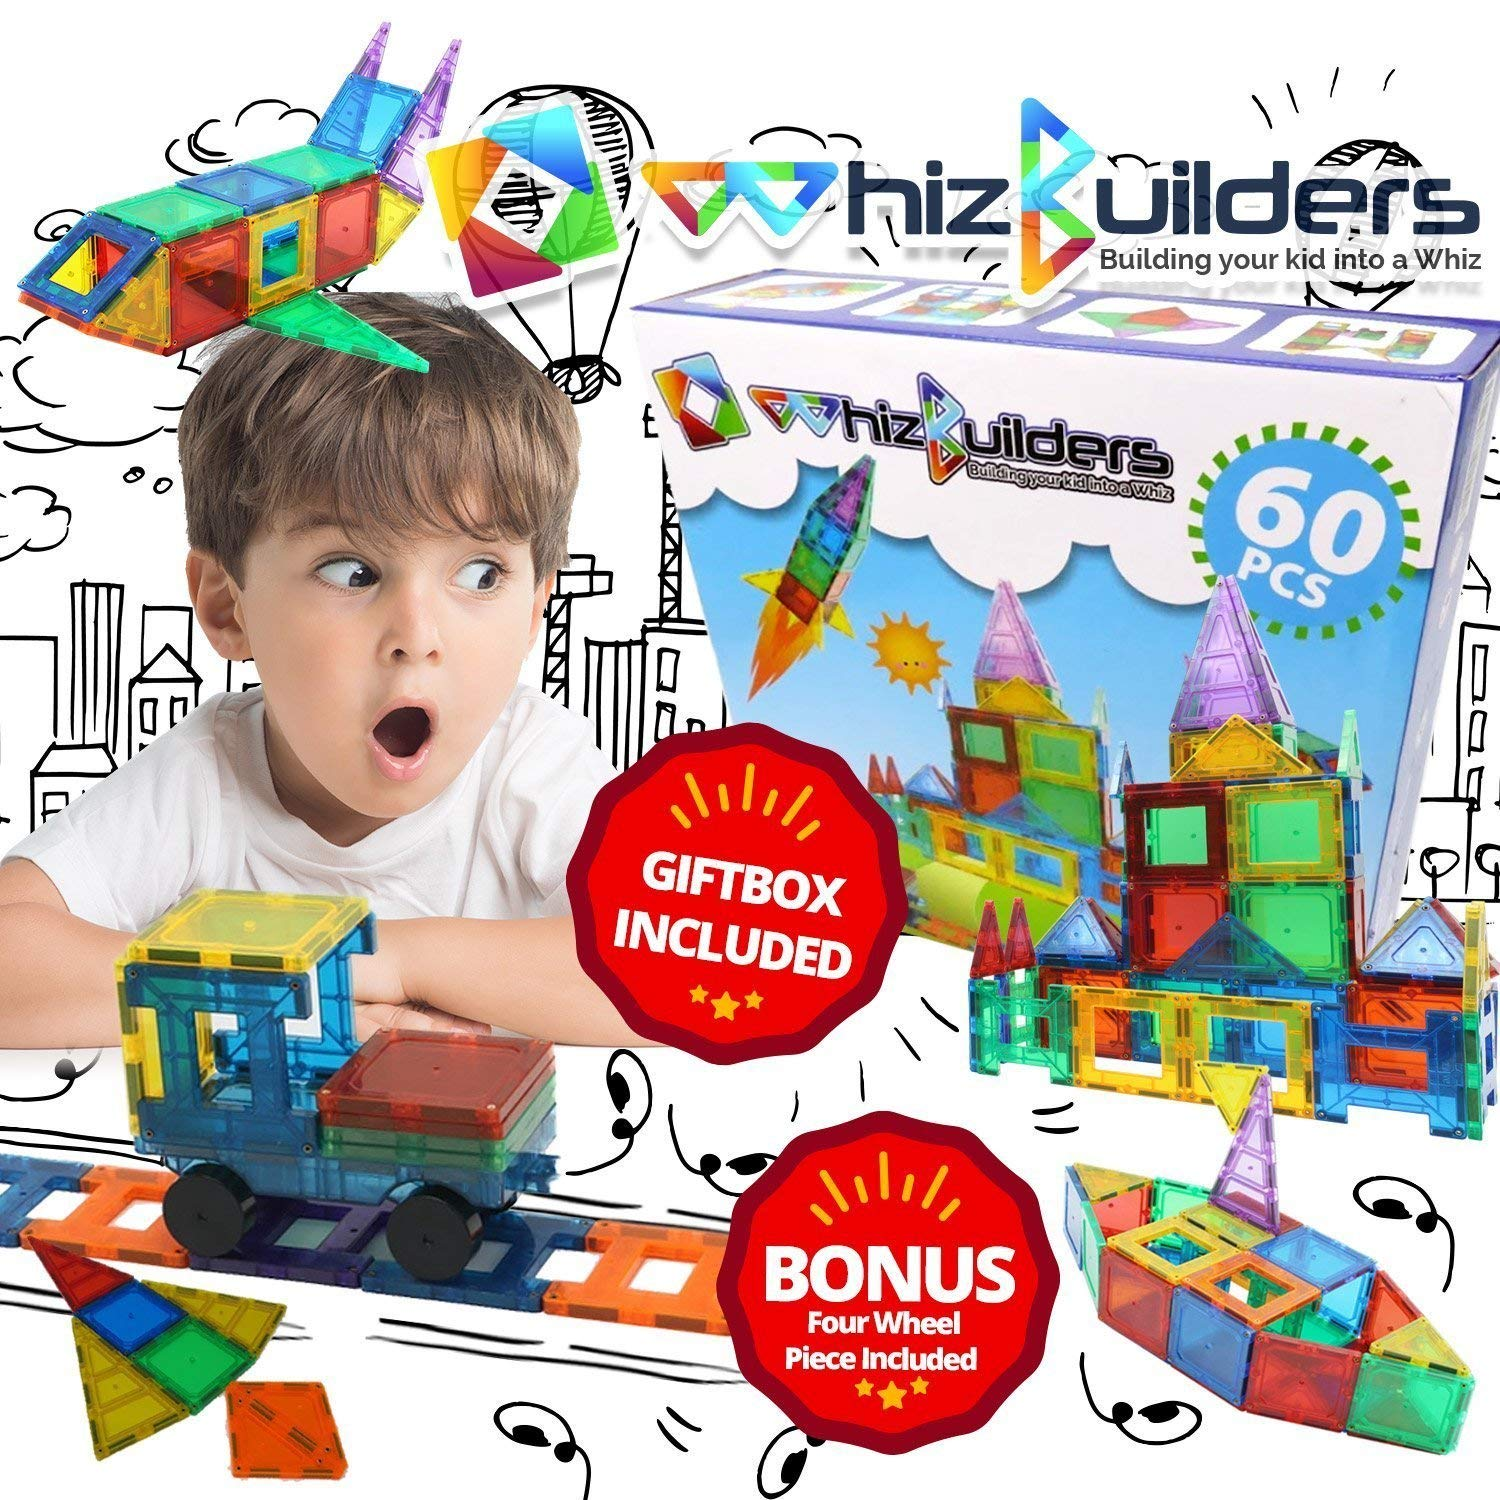 Magnetic Building Tiles Toys Set - Tiles Block Toy Kit for Kids - STEM Educational Construction Stacking Shapes - 60 Pieces by WhizBuilders (Image #8)